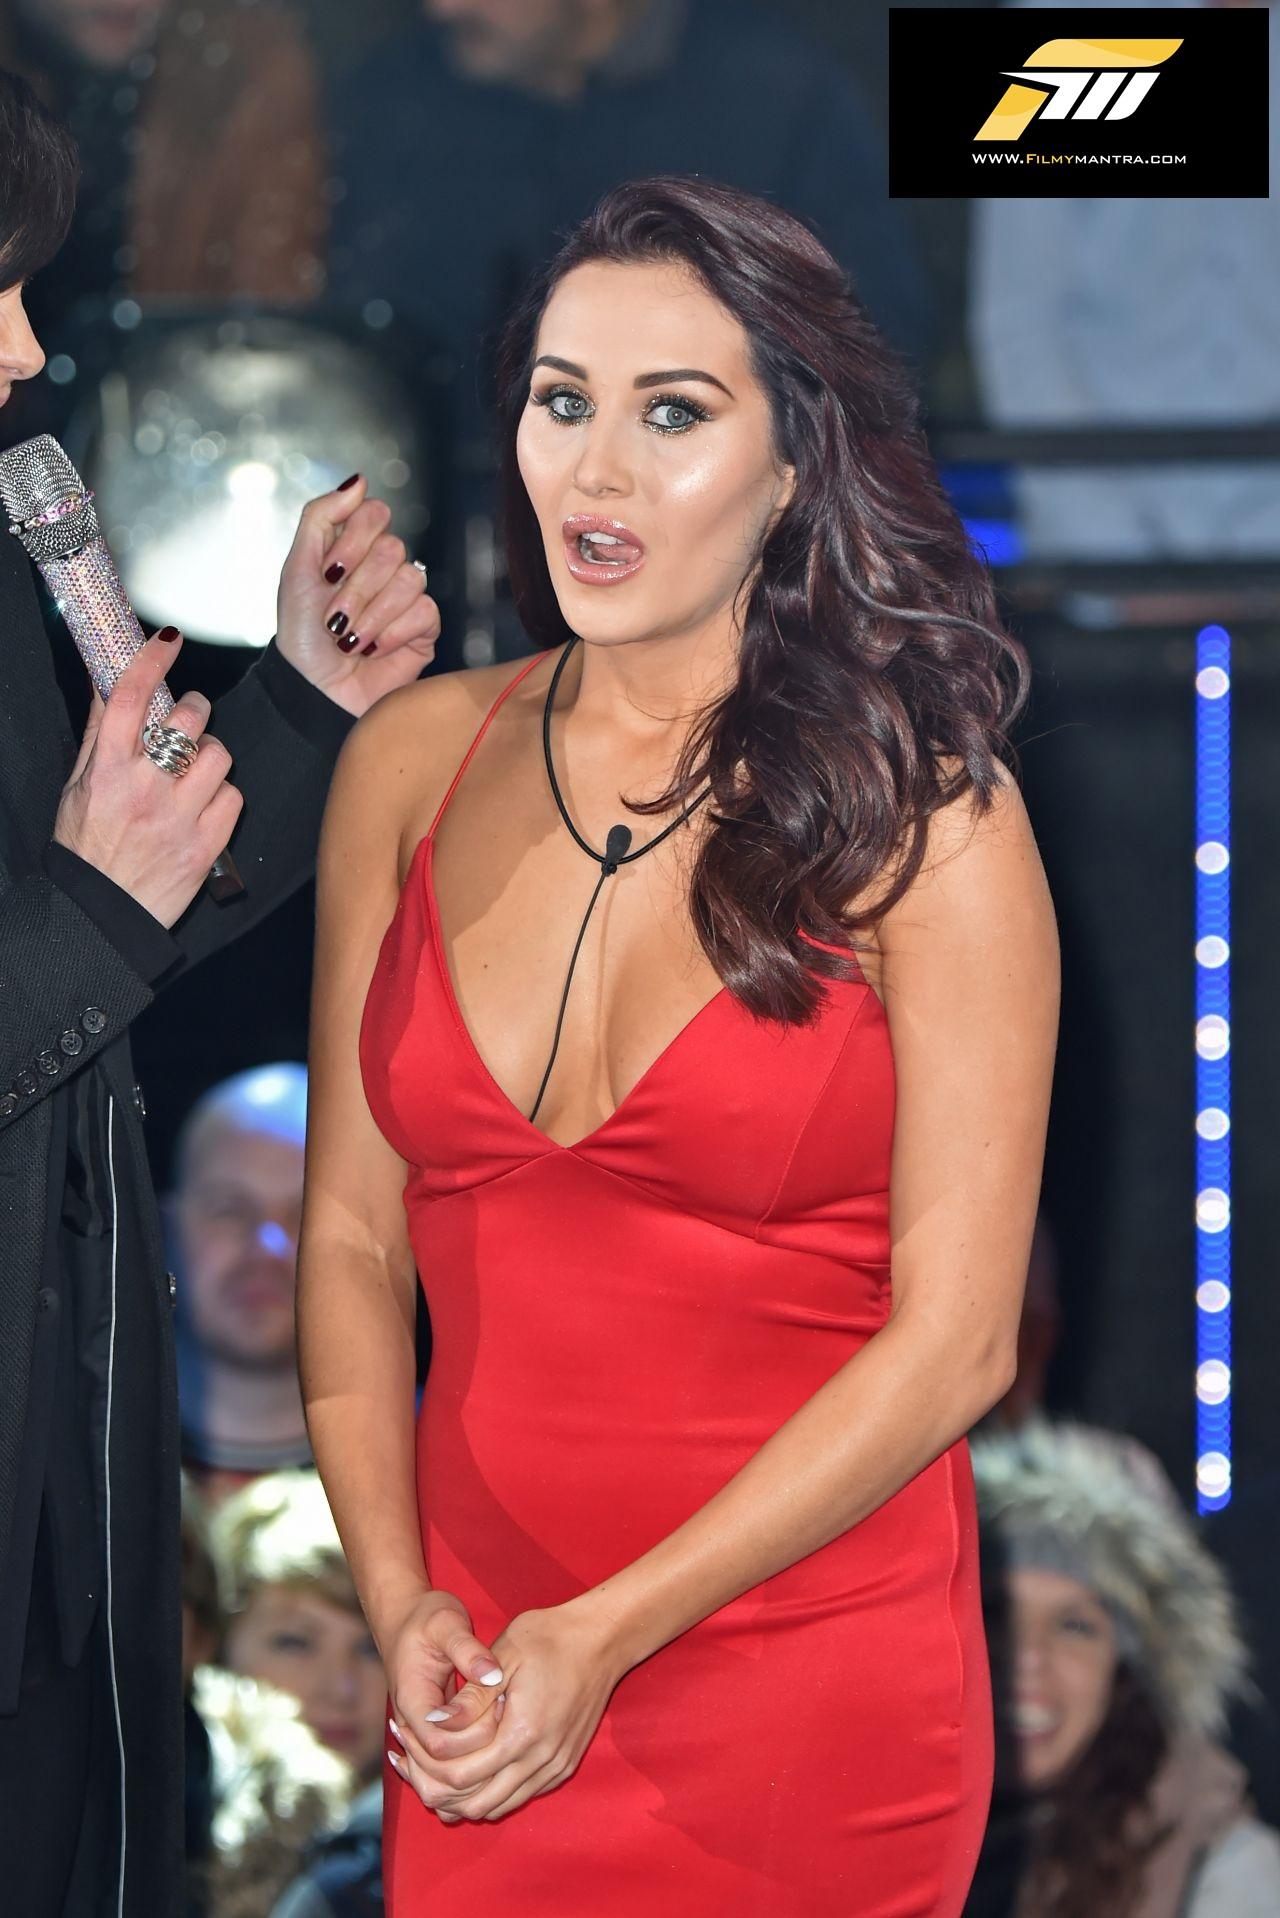 Celebrity Big Brother (UK series 14) - Wikipedia